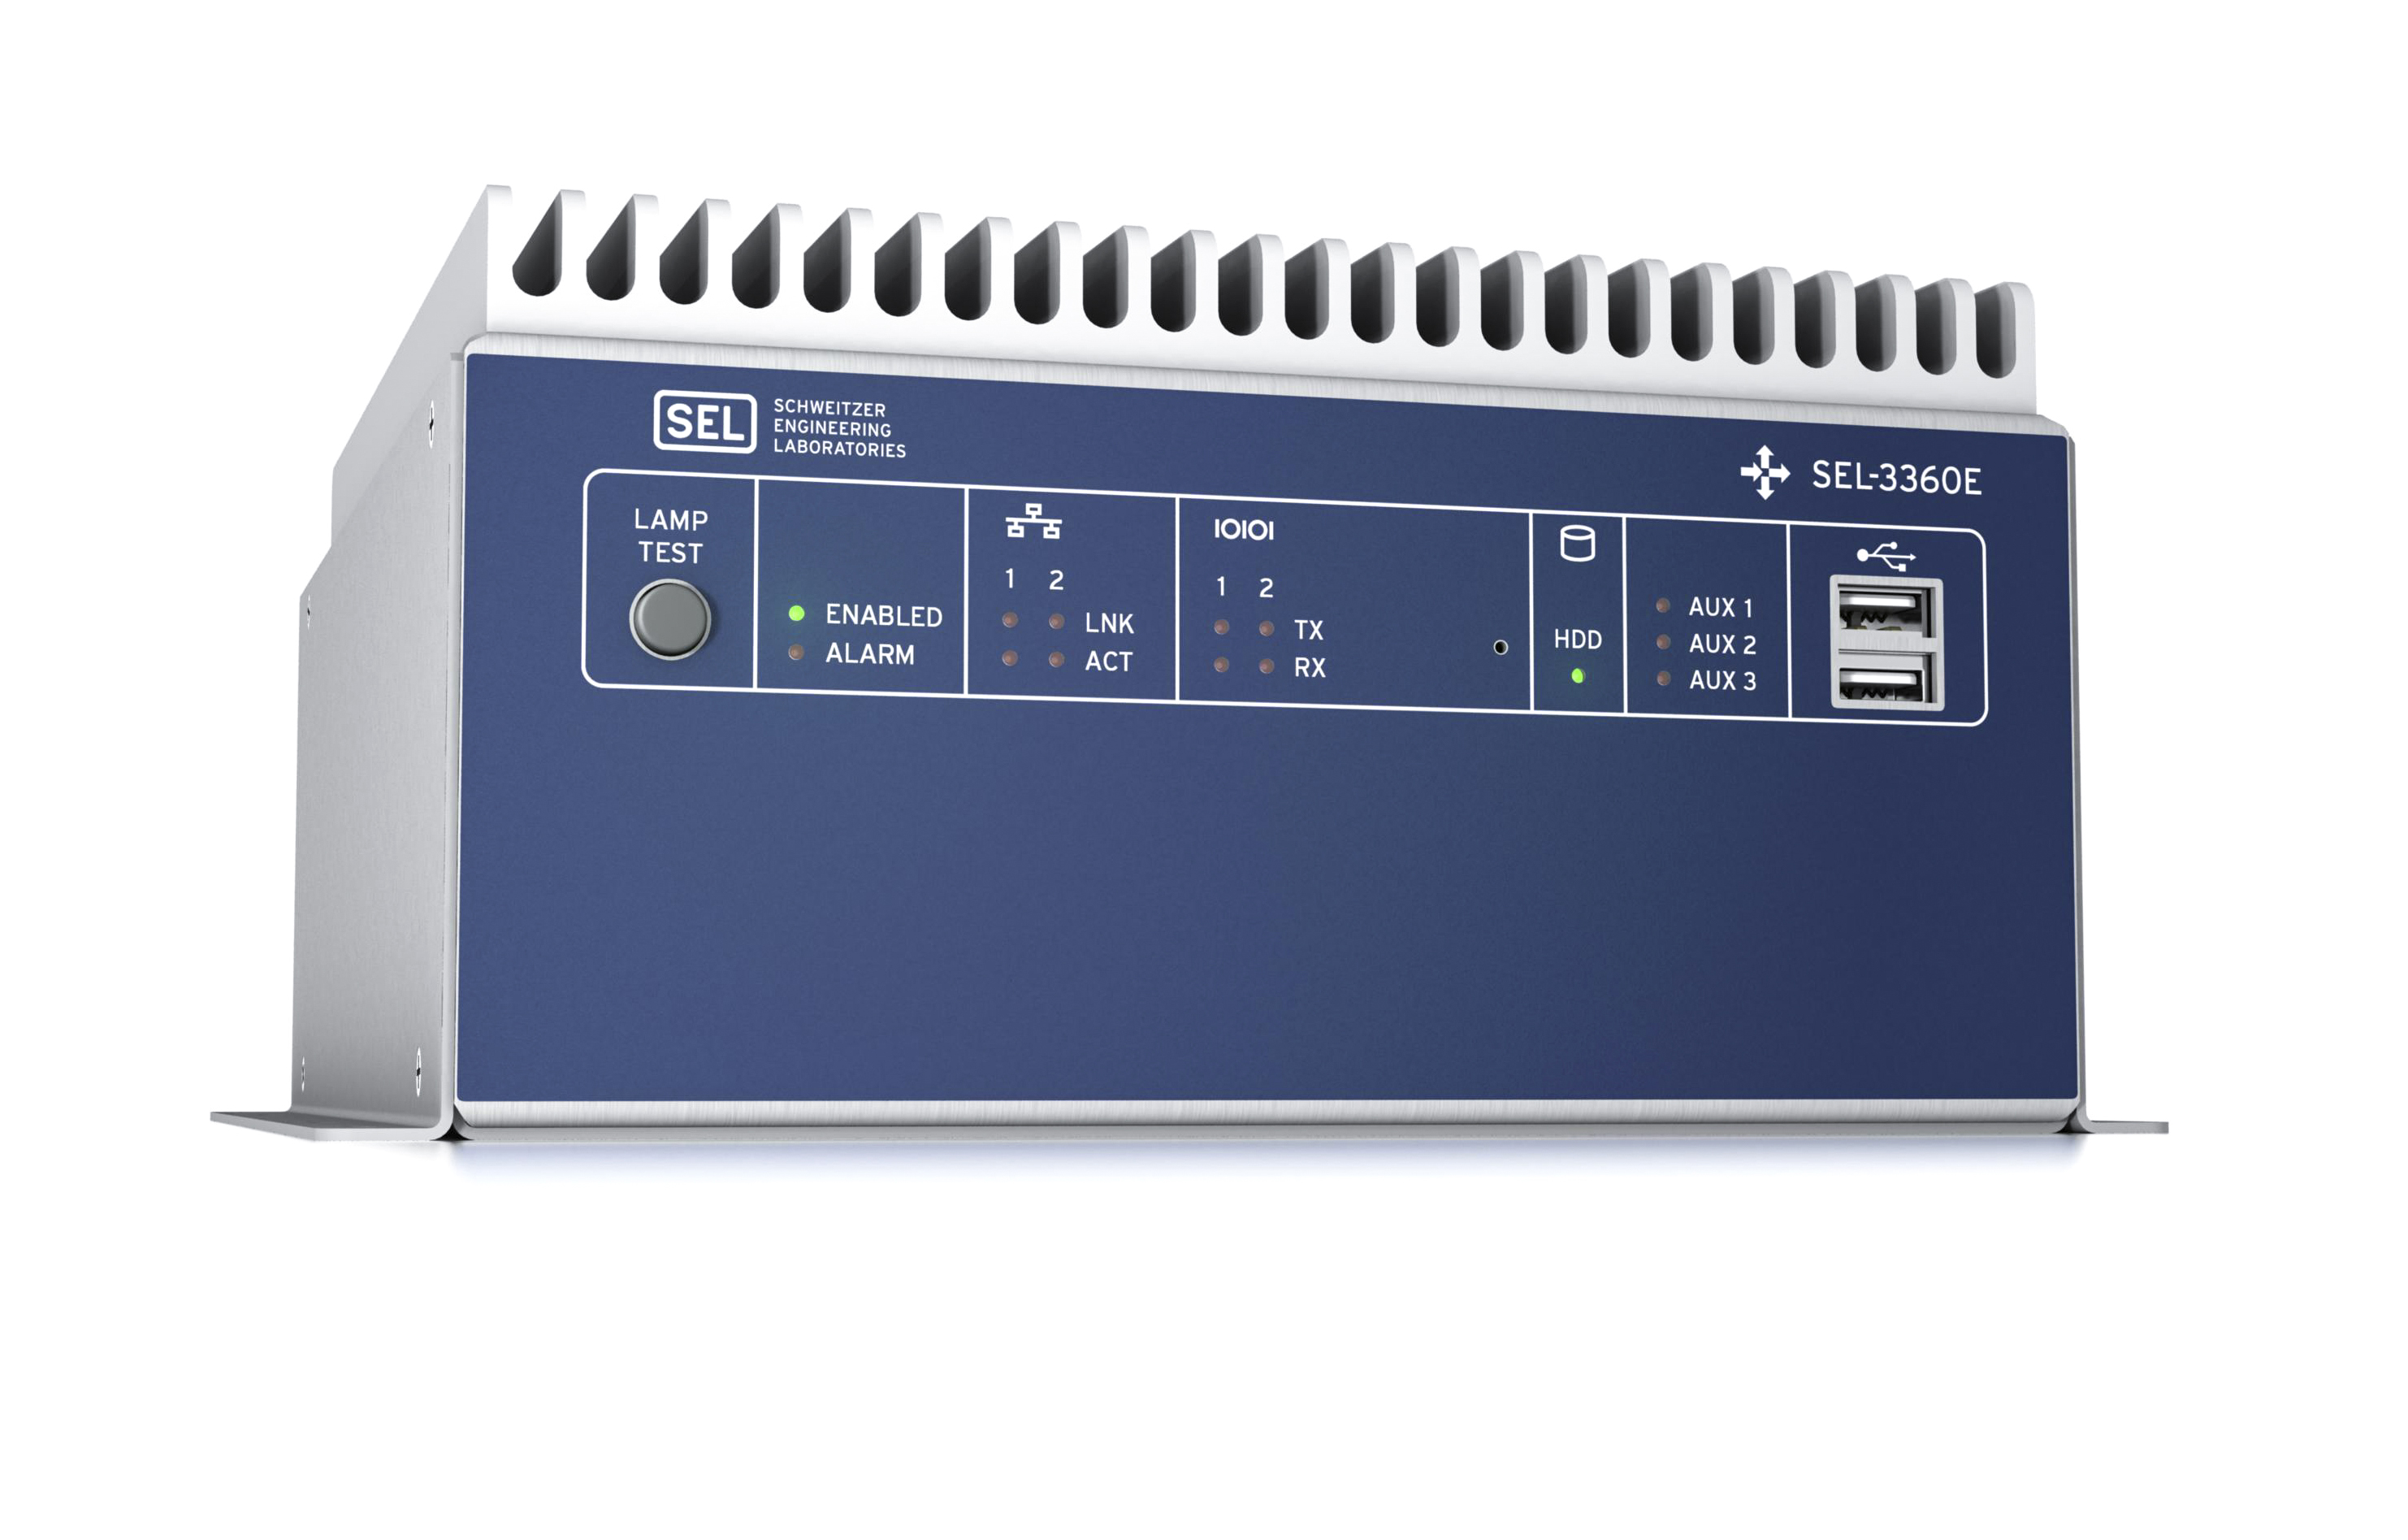 SEL launches new industrial computer